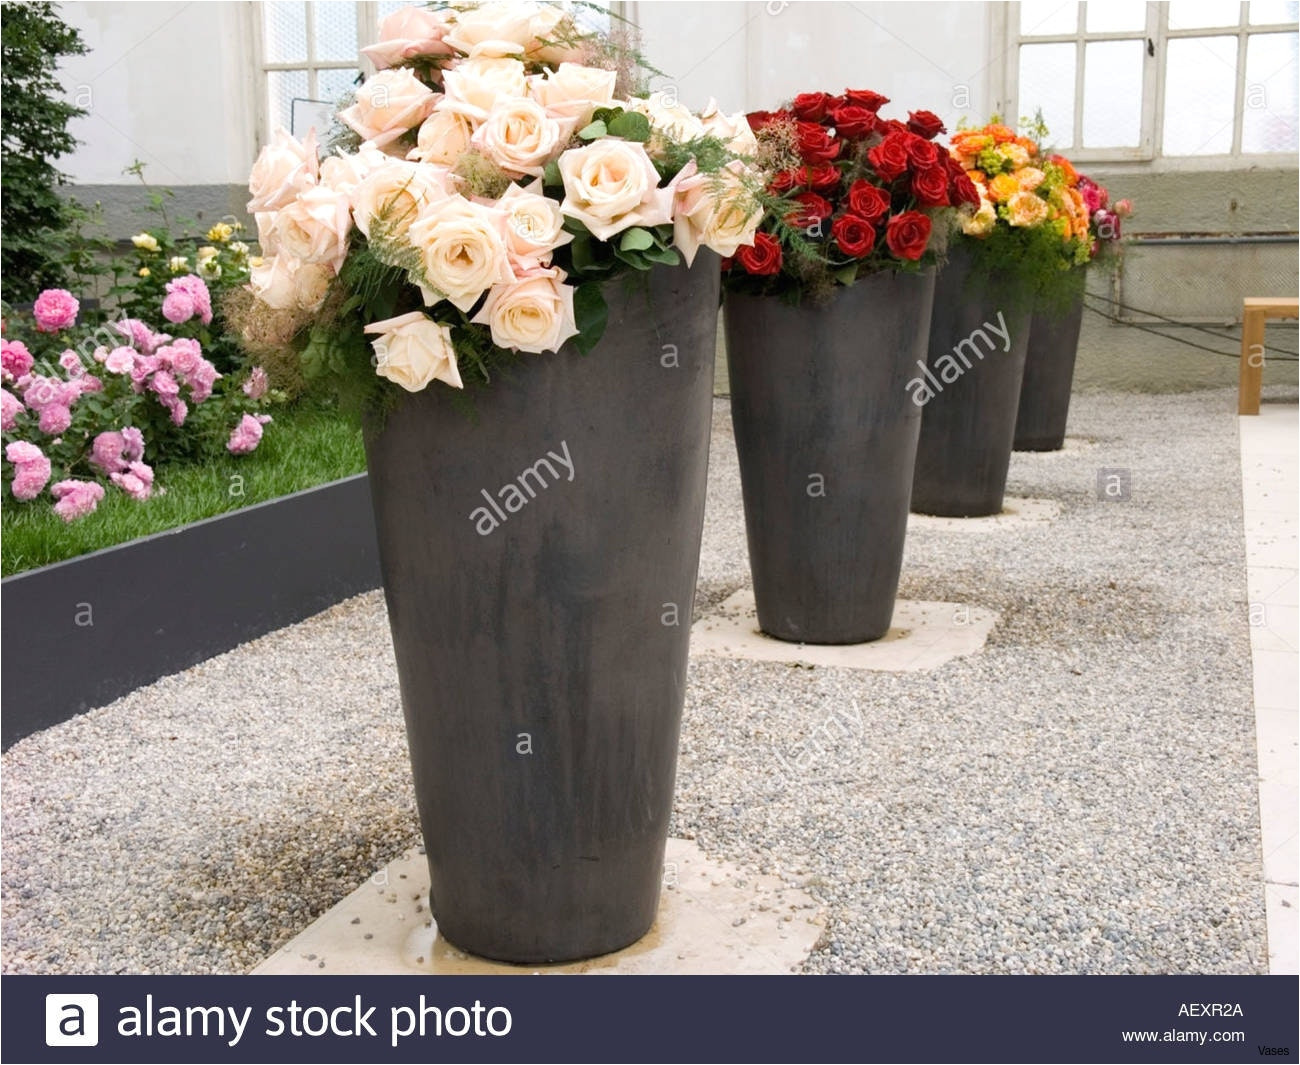 cheap cylinder vases for wedding centerpieces of used wedding decorations for sale party articles with flower vases throughout used wedding decorations for sale party articles with flower vases for sale tag big vase l